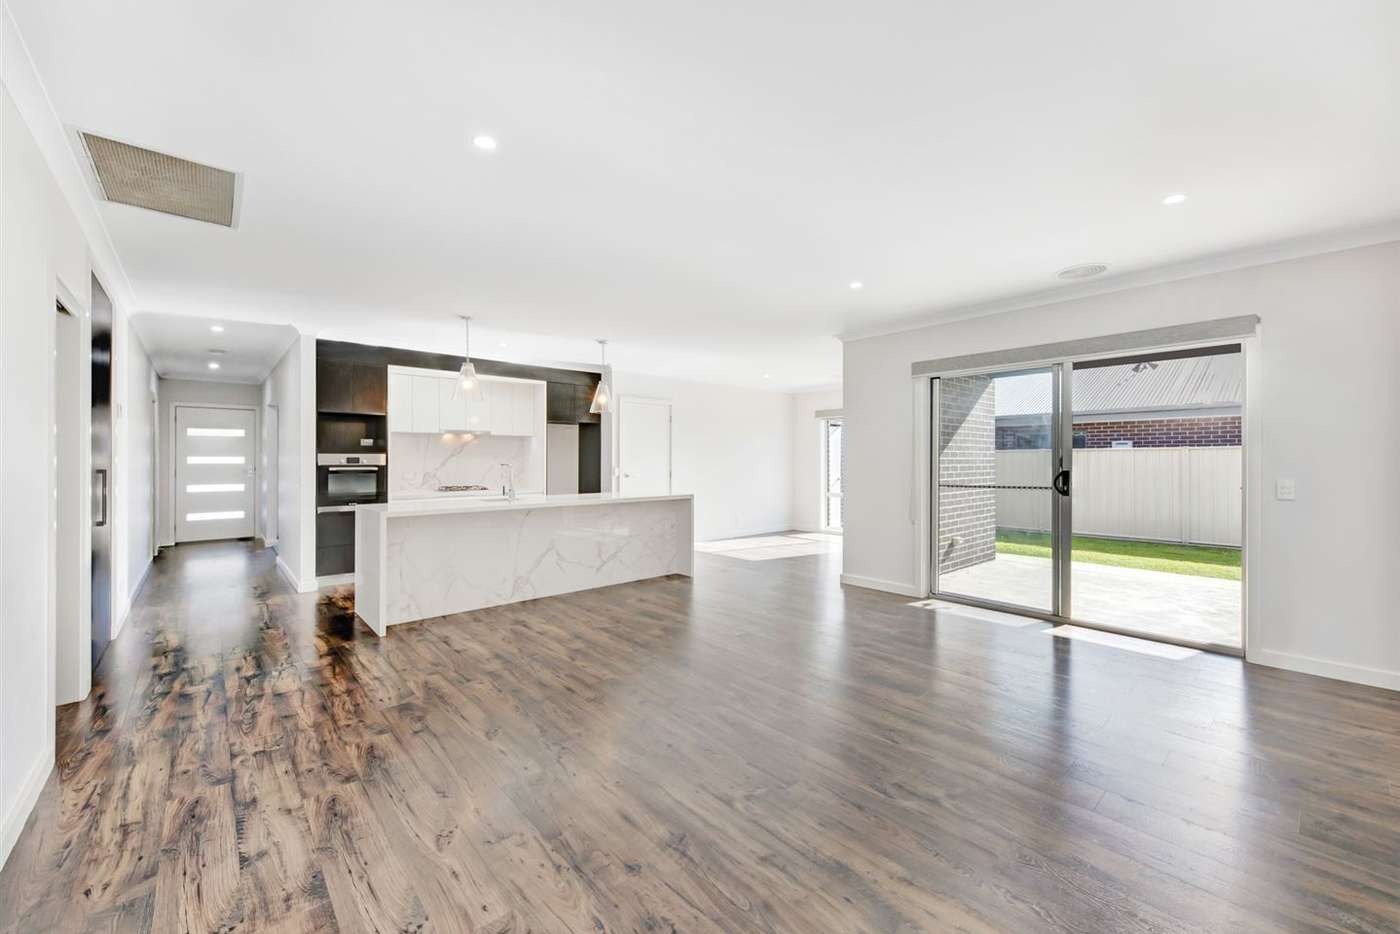 Fifth view of Homely house listing, 13 Dalwhinnie Drive, Wangaratta VIC 3677